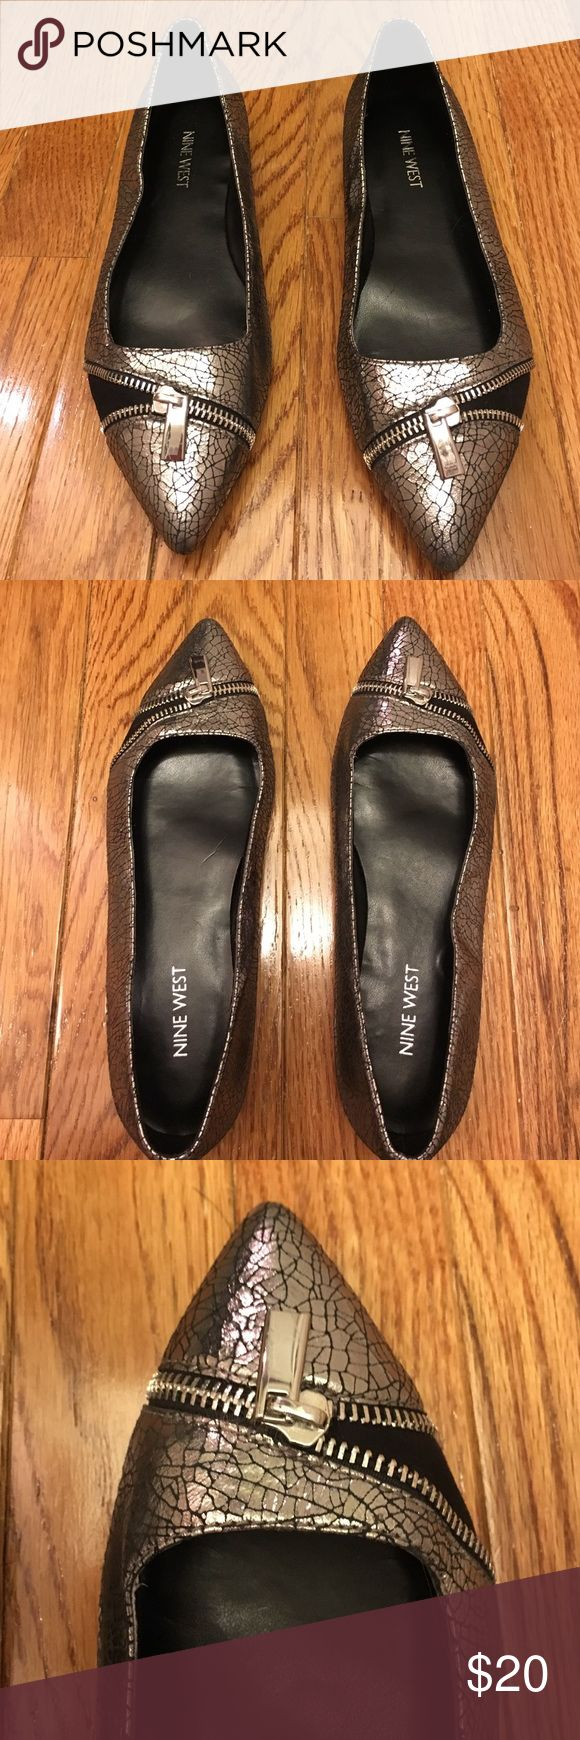 Fun Nine West silver flats Fun flats in this cool leather and textile Nine West shoe. Silver and black with zipper detailing. A bit of the silver is coming off on bottom of side of left shoe - hard to see when wearing - see last pic for close up. Nine West Shoes Flats & Loafers